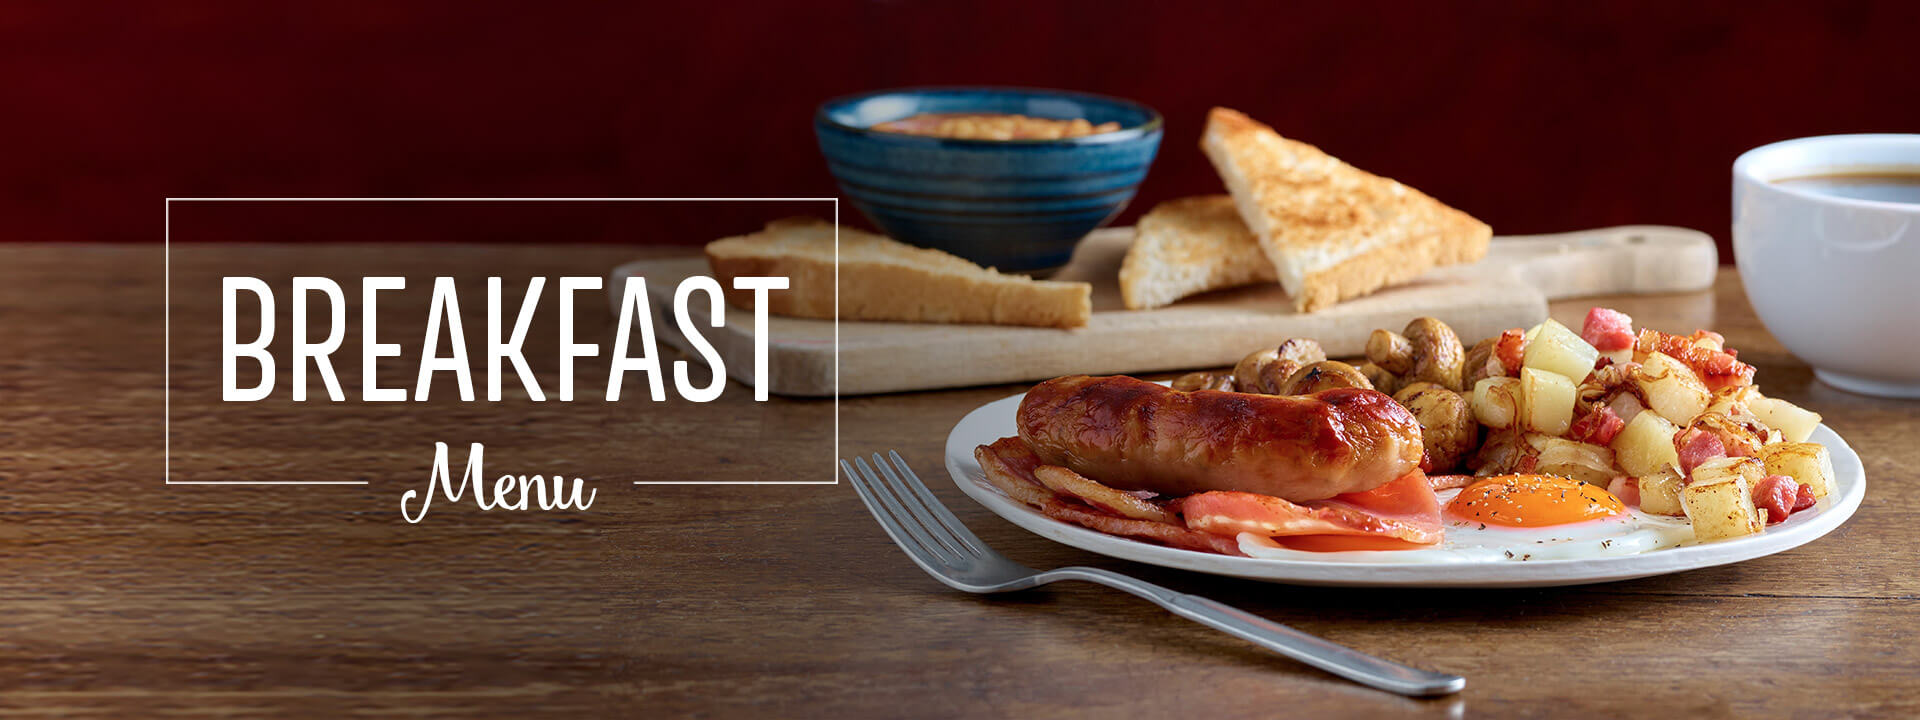 Breakfast at Toby Carvery Keighley - Book Now